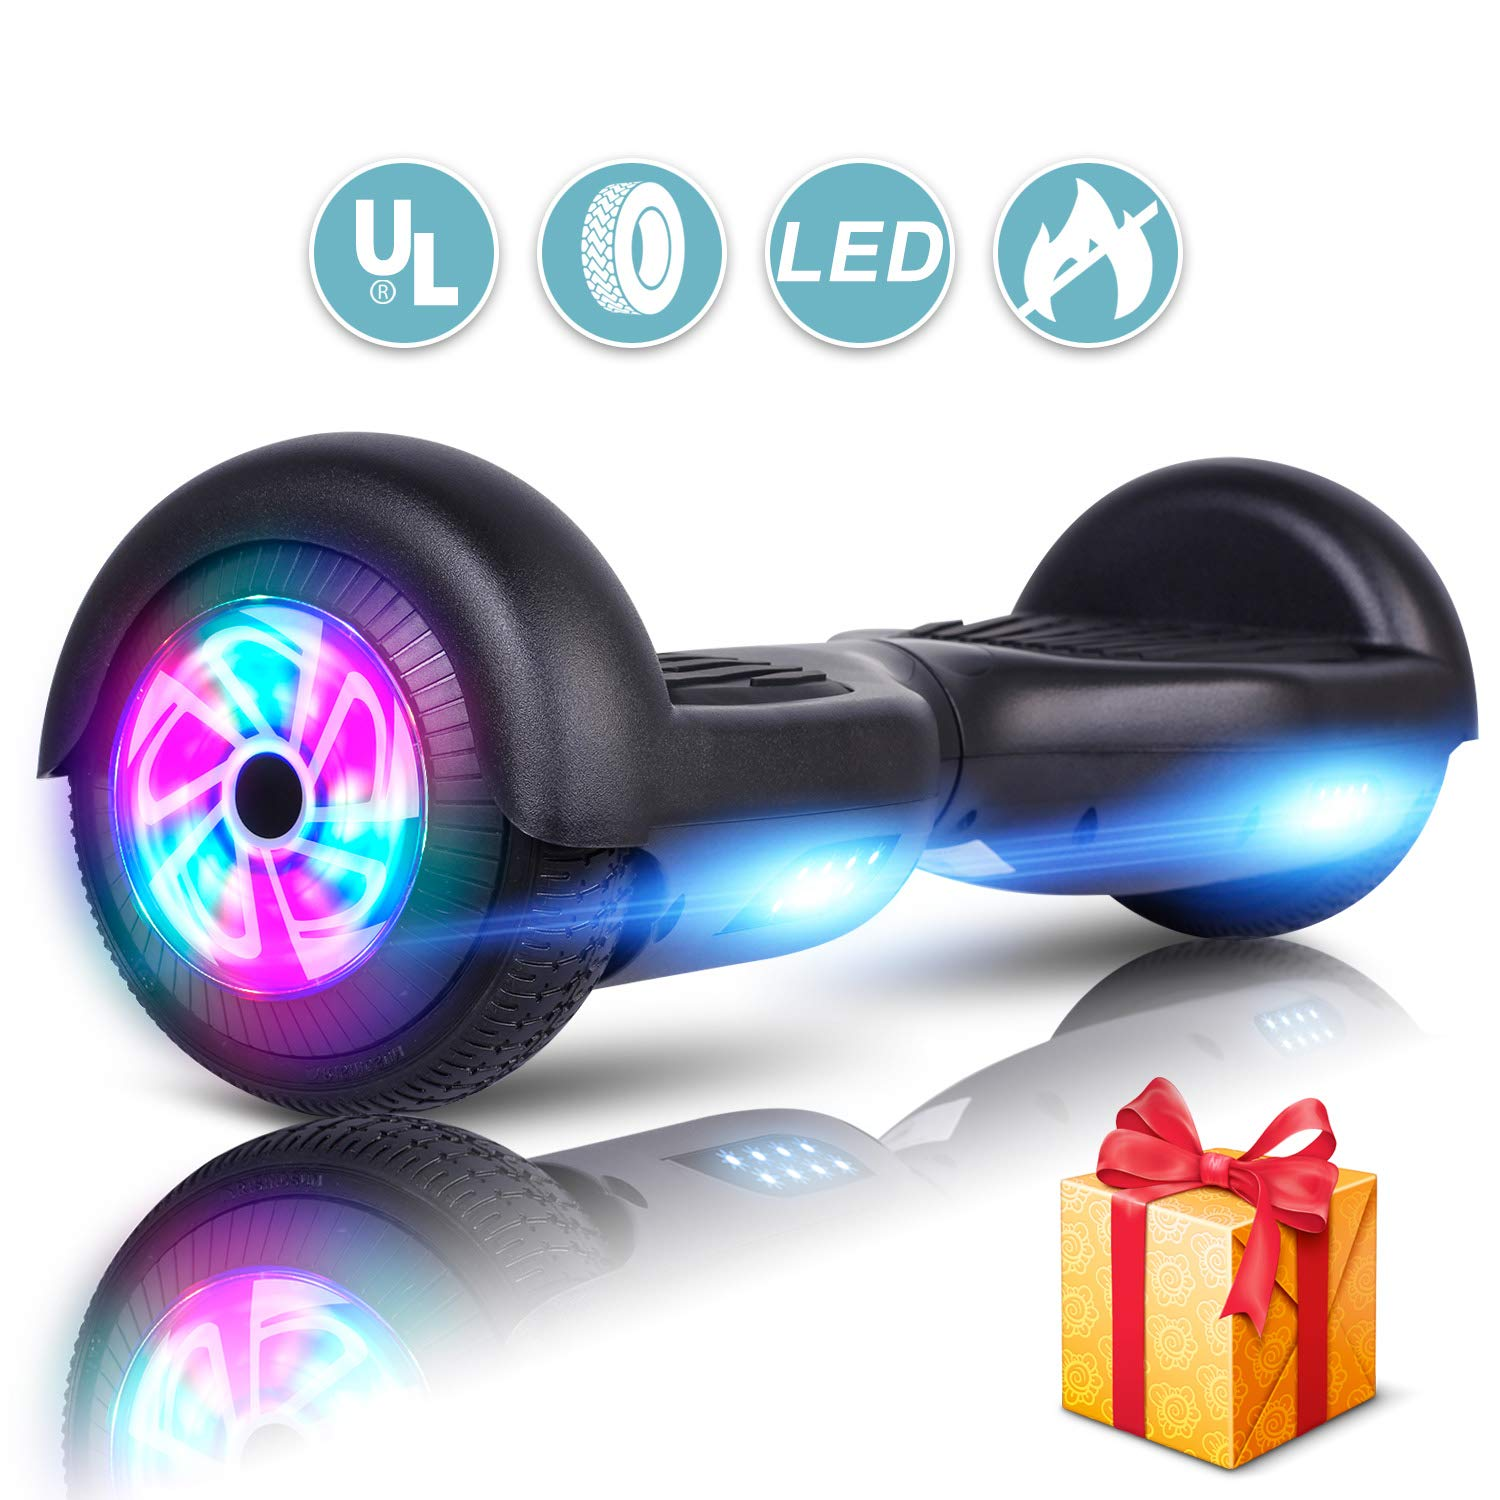 Sea Eagle Hoverboard Self Balancing Scooter Hover Board for Kids Adults with UL2272 Certified, Wheels LED Lights and Portable Carrying Bag (Black) by LIEAGLE